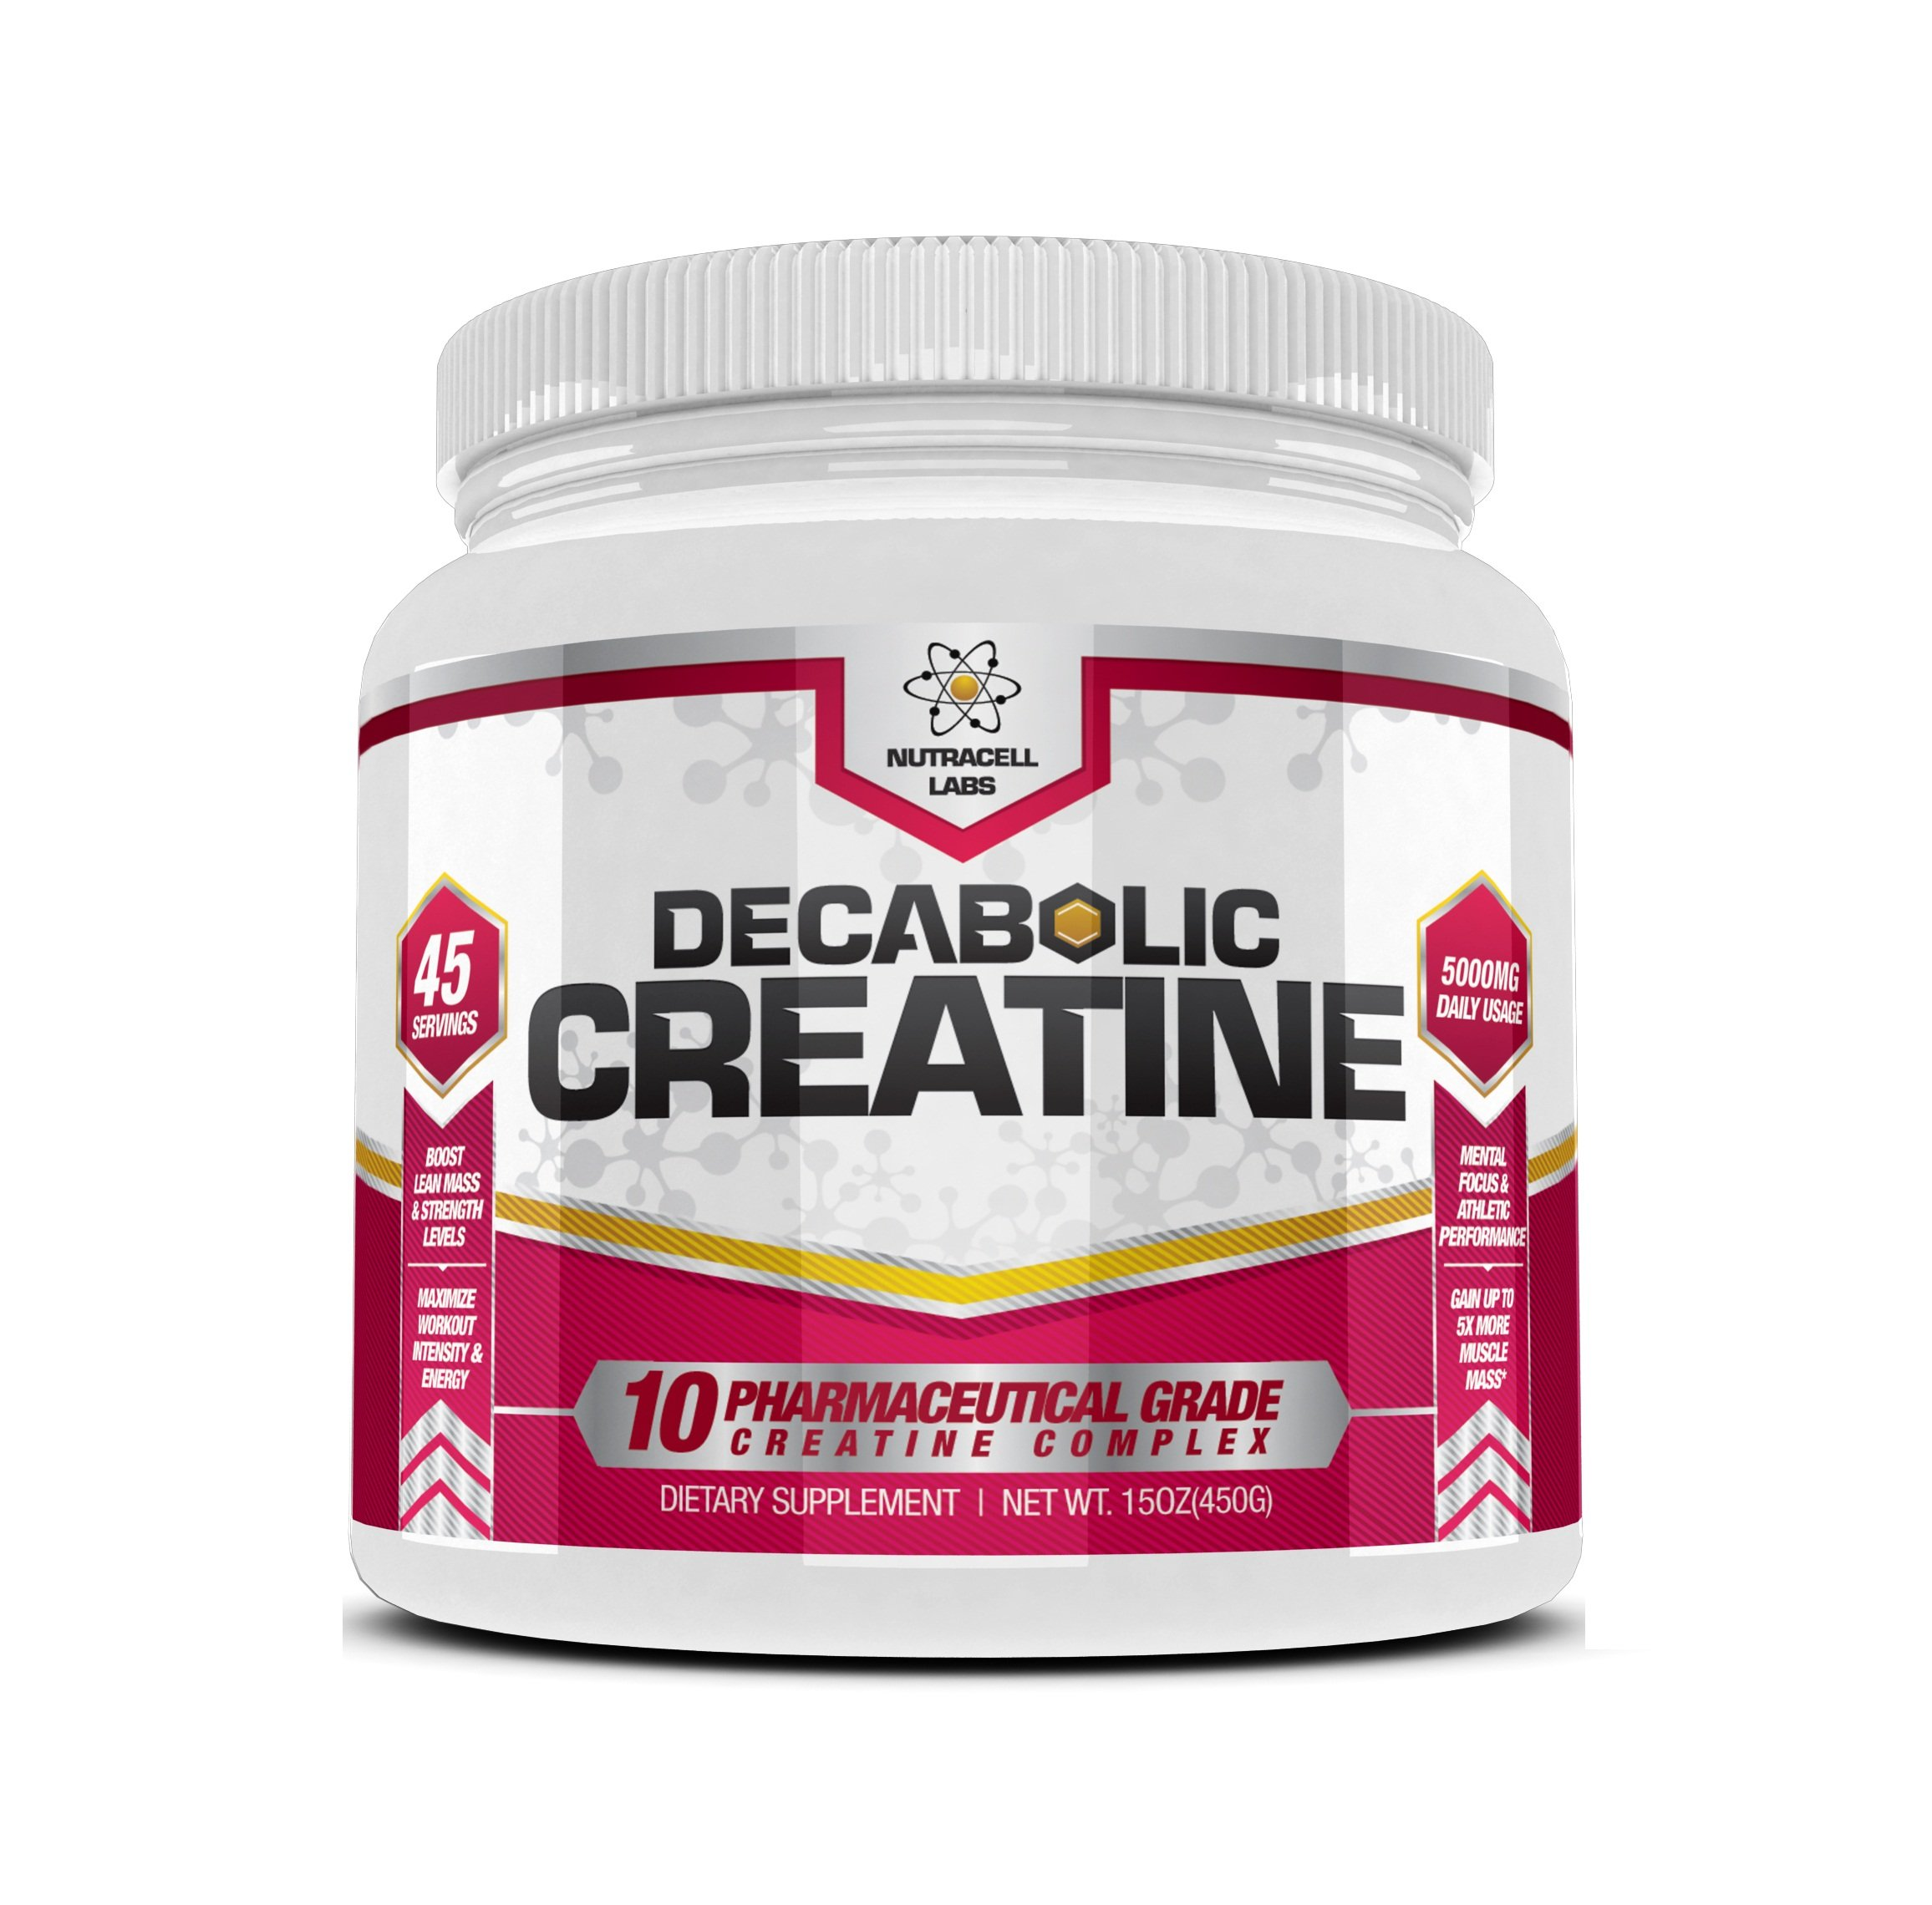 Decabolic Creatine : Powerful 10 Creatine BLEND Powder - Extreme Performance, Muscle Strength and Size Boost Supplement